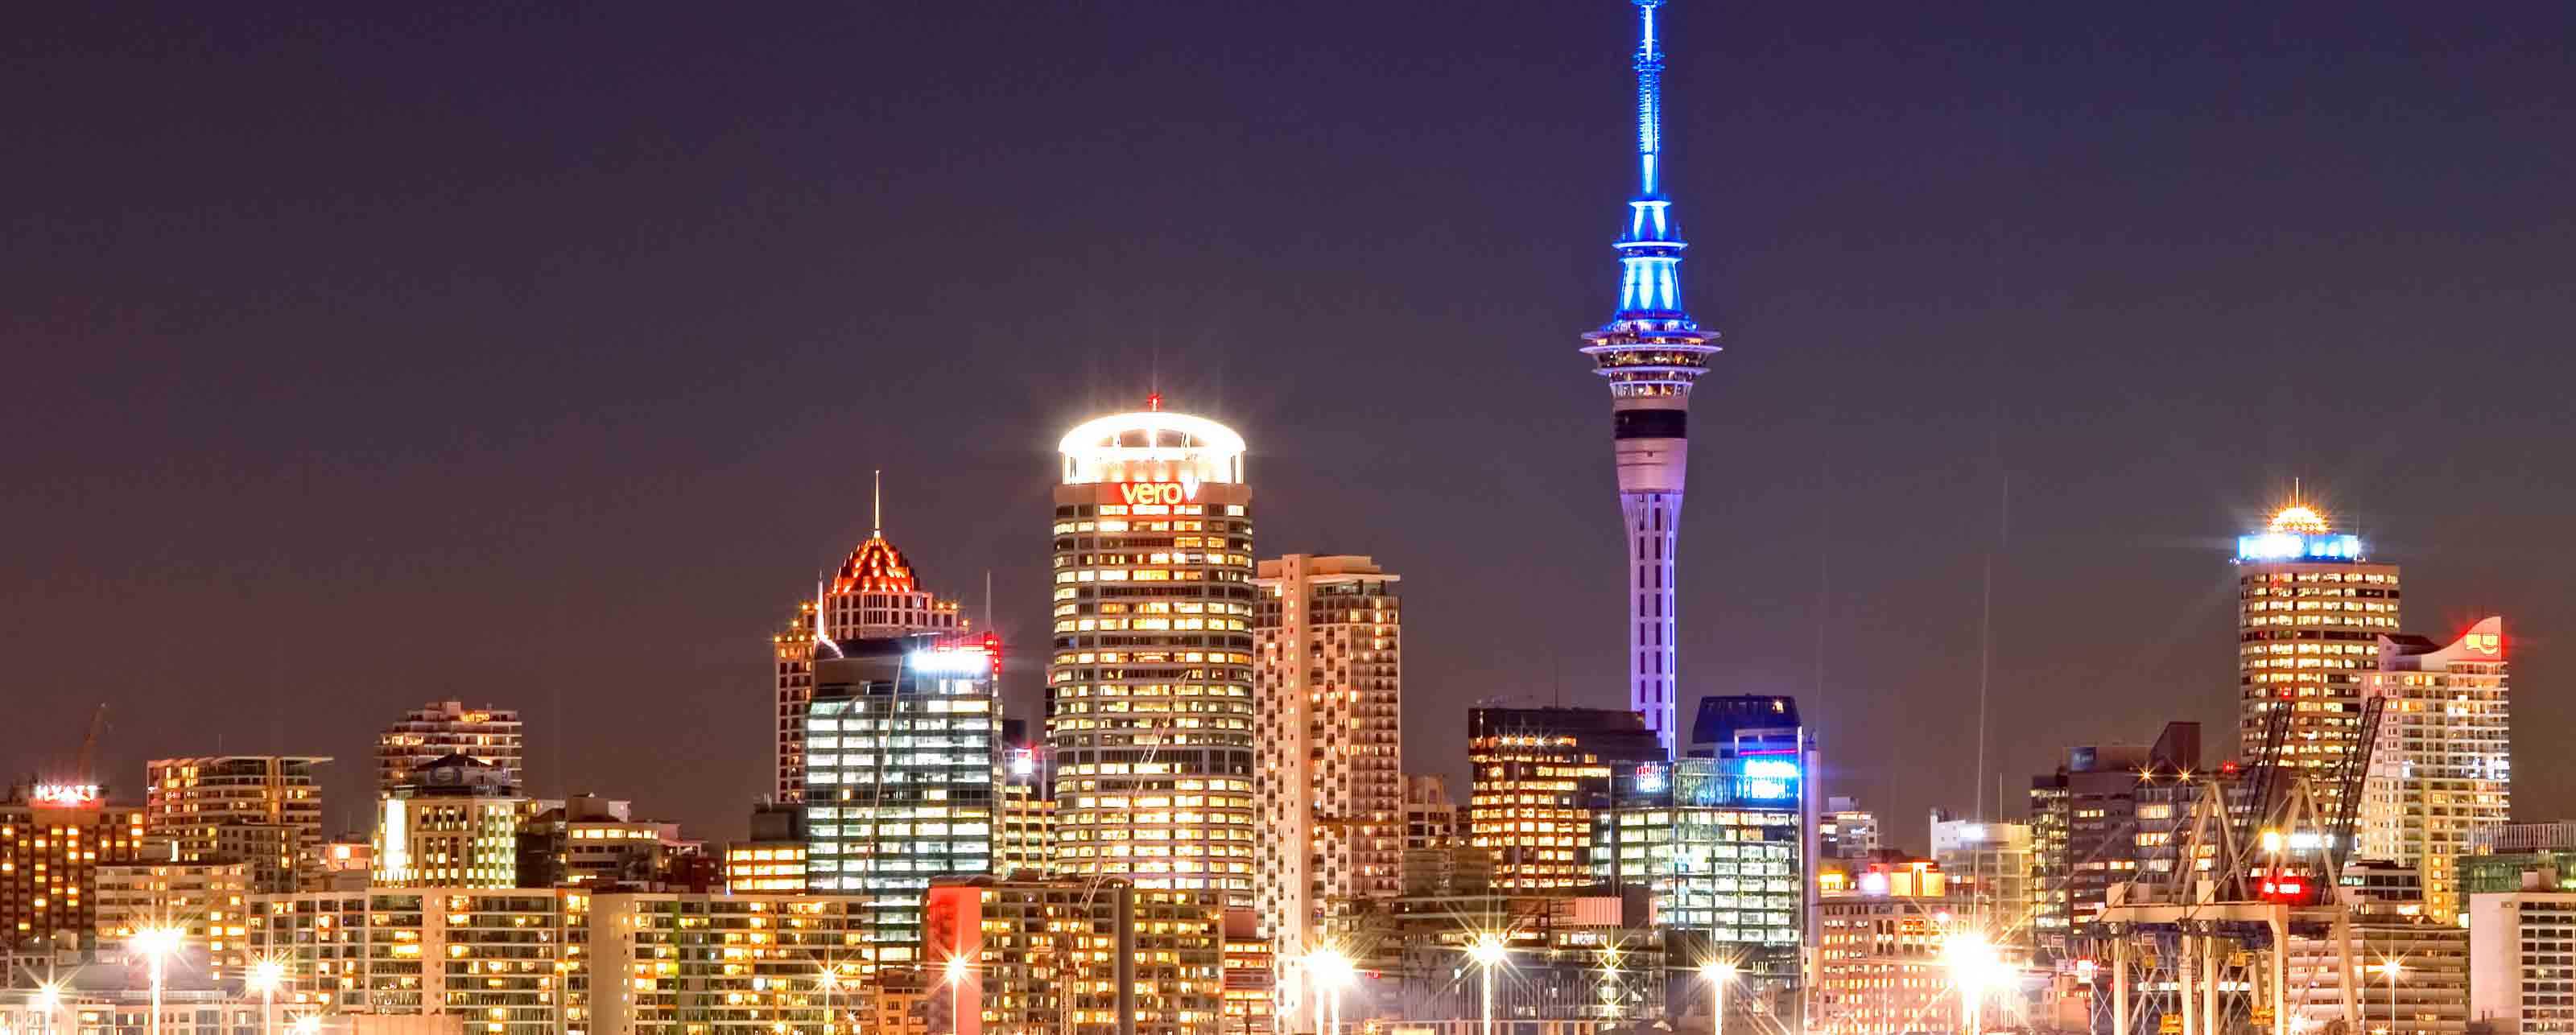 Chorus New Zealand Telecom uses GE software to keep the network performing